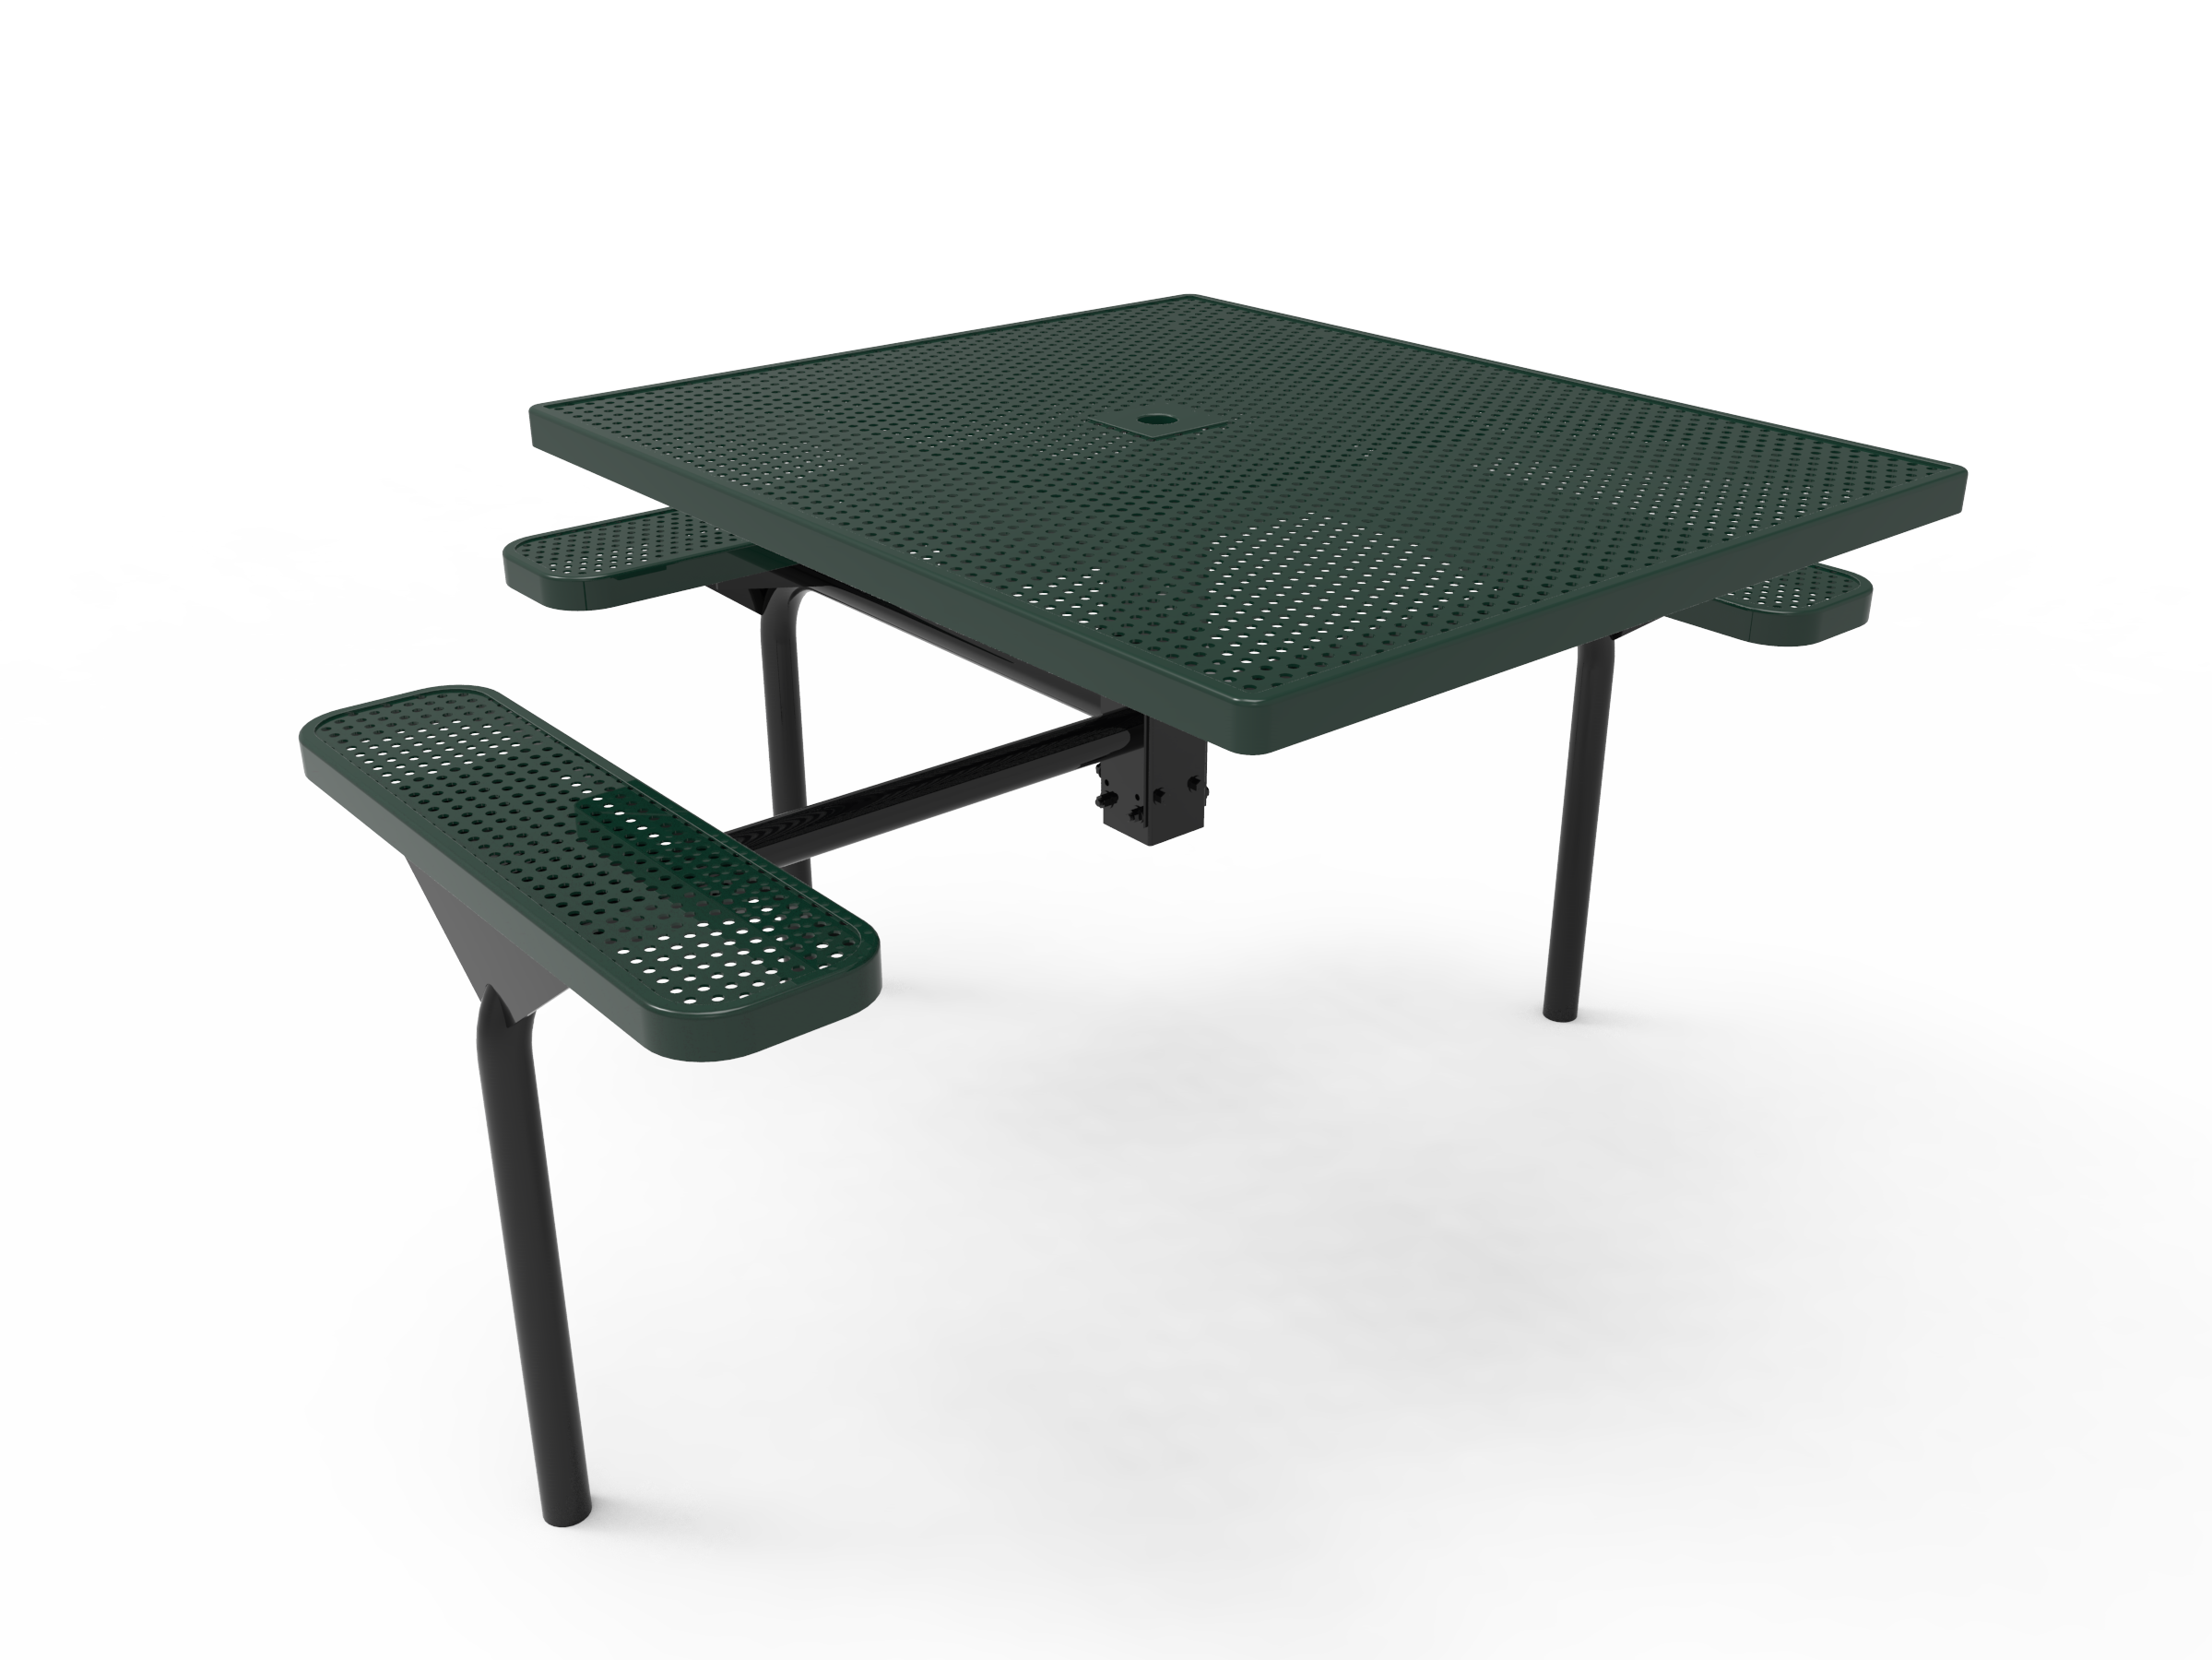 Lexington Square Nexus Pedestal Table - ADA Accessible, Frame with Powder Coat Finish, Top and Seats with Advanced DuraLex Coating